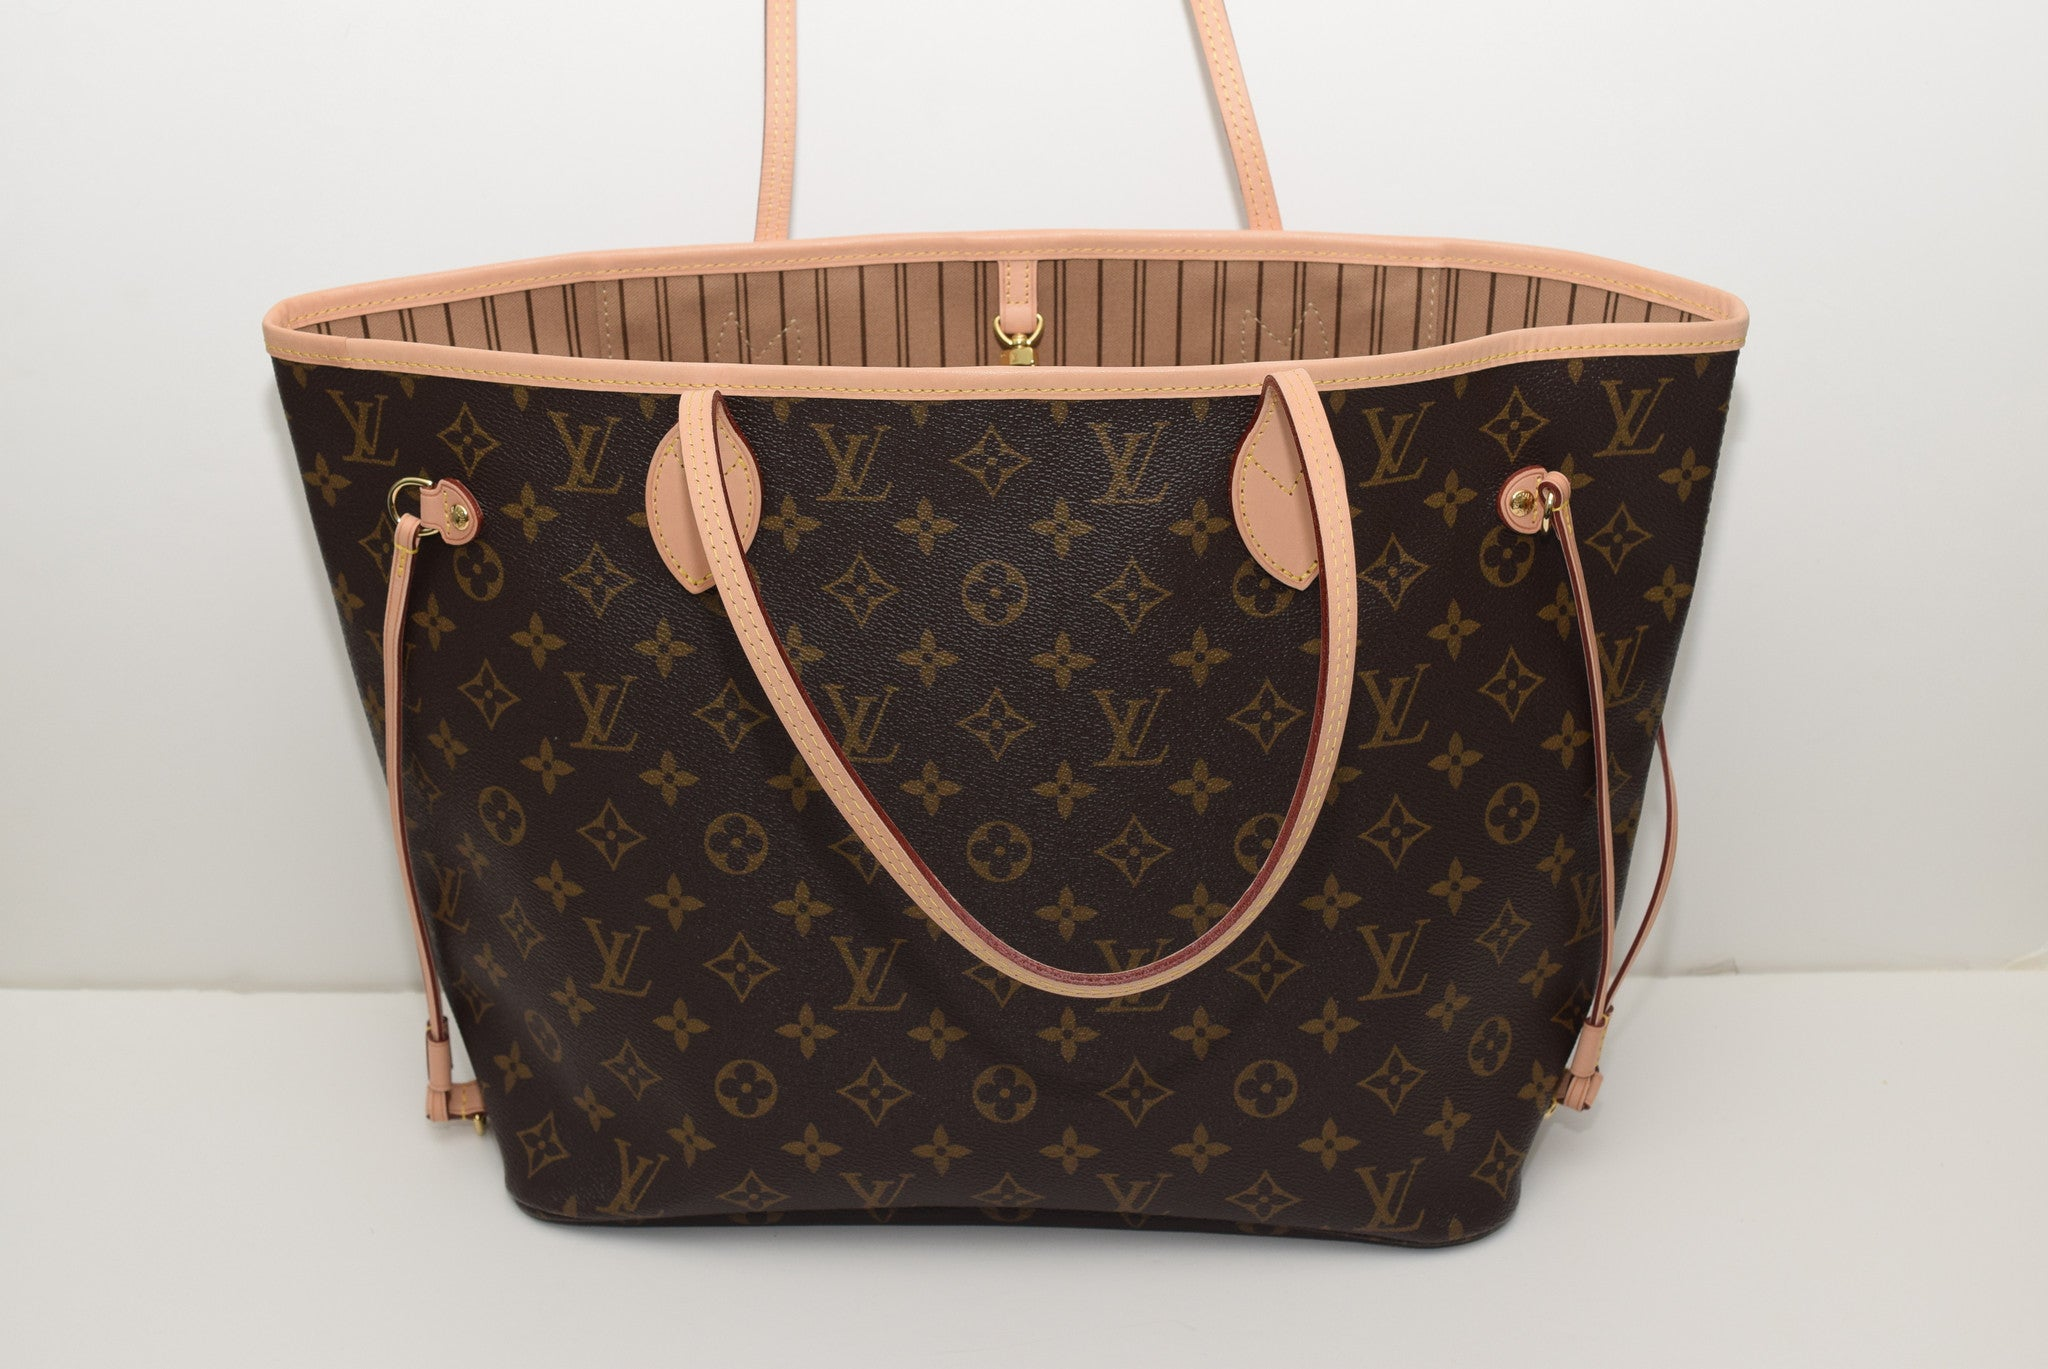 LOUIS VUITTON Brand New!!! Never Worn Neverfull Mm In Lining - Date Co -  Timeless Gallery 0258e5da3960e